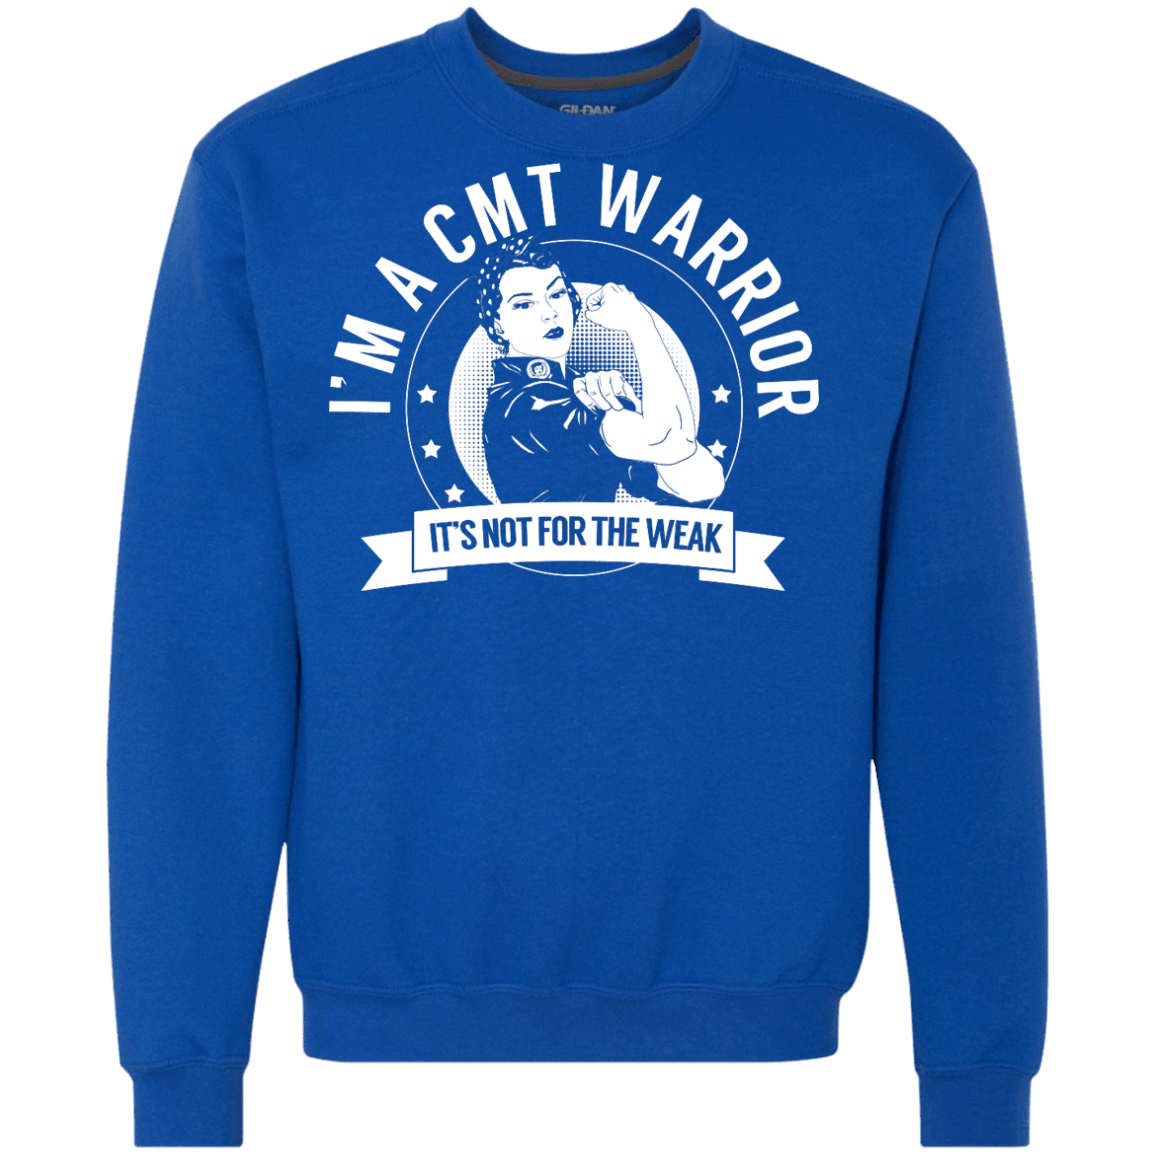 Charcot-Marie-Tooth Disease - CMT Warrior Not For The Weak Crewneck Sweatshirt 9 oz. - The Unchargeables